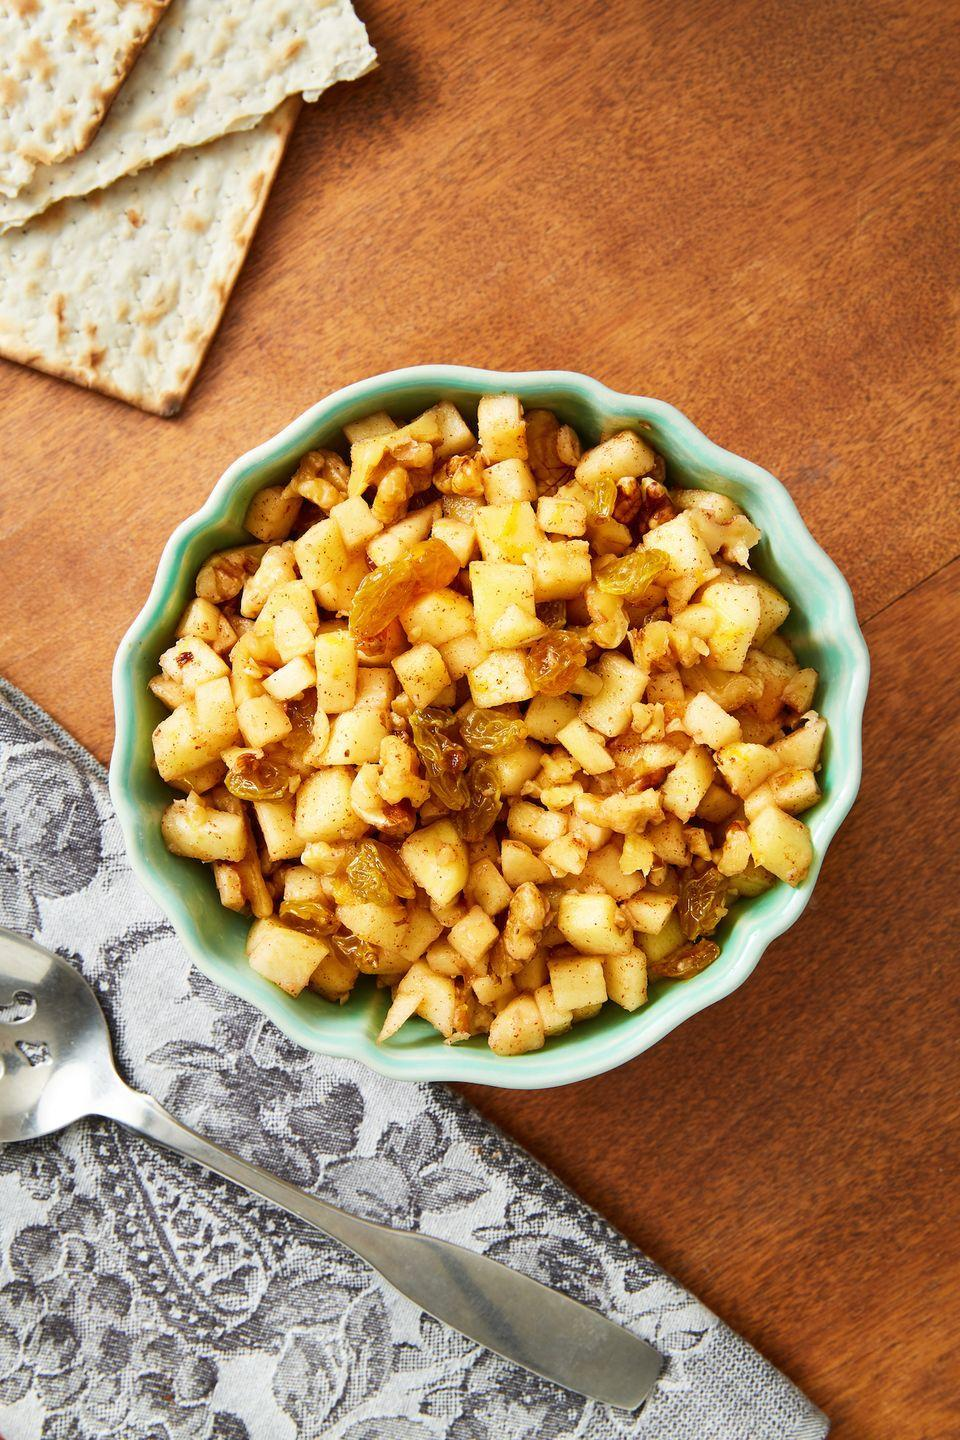 """<p>The classic condiment that goes perfectly with matzah is irresistible as always.</p><p>Get the recipe from <a href=""""https://www.delish.com/cooking/recipe-ideas/a31790190/charoset-recipe/"""" rel=""""nofollow noopener"""" target=""""_blank"""" data-ylk=""""slk:Delish."""" class=""""link rapid-noclick-resp"""">Delish.</a></p>"""